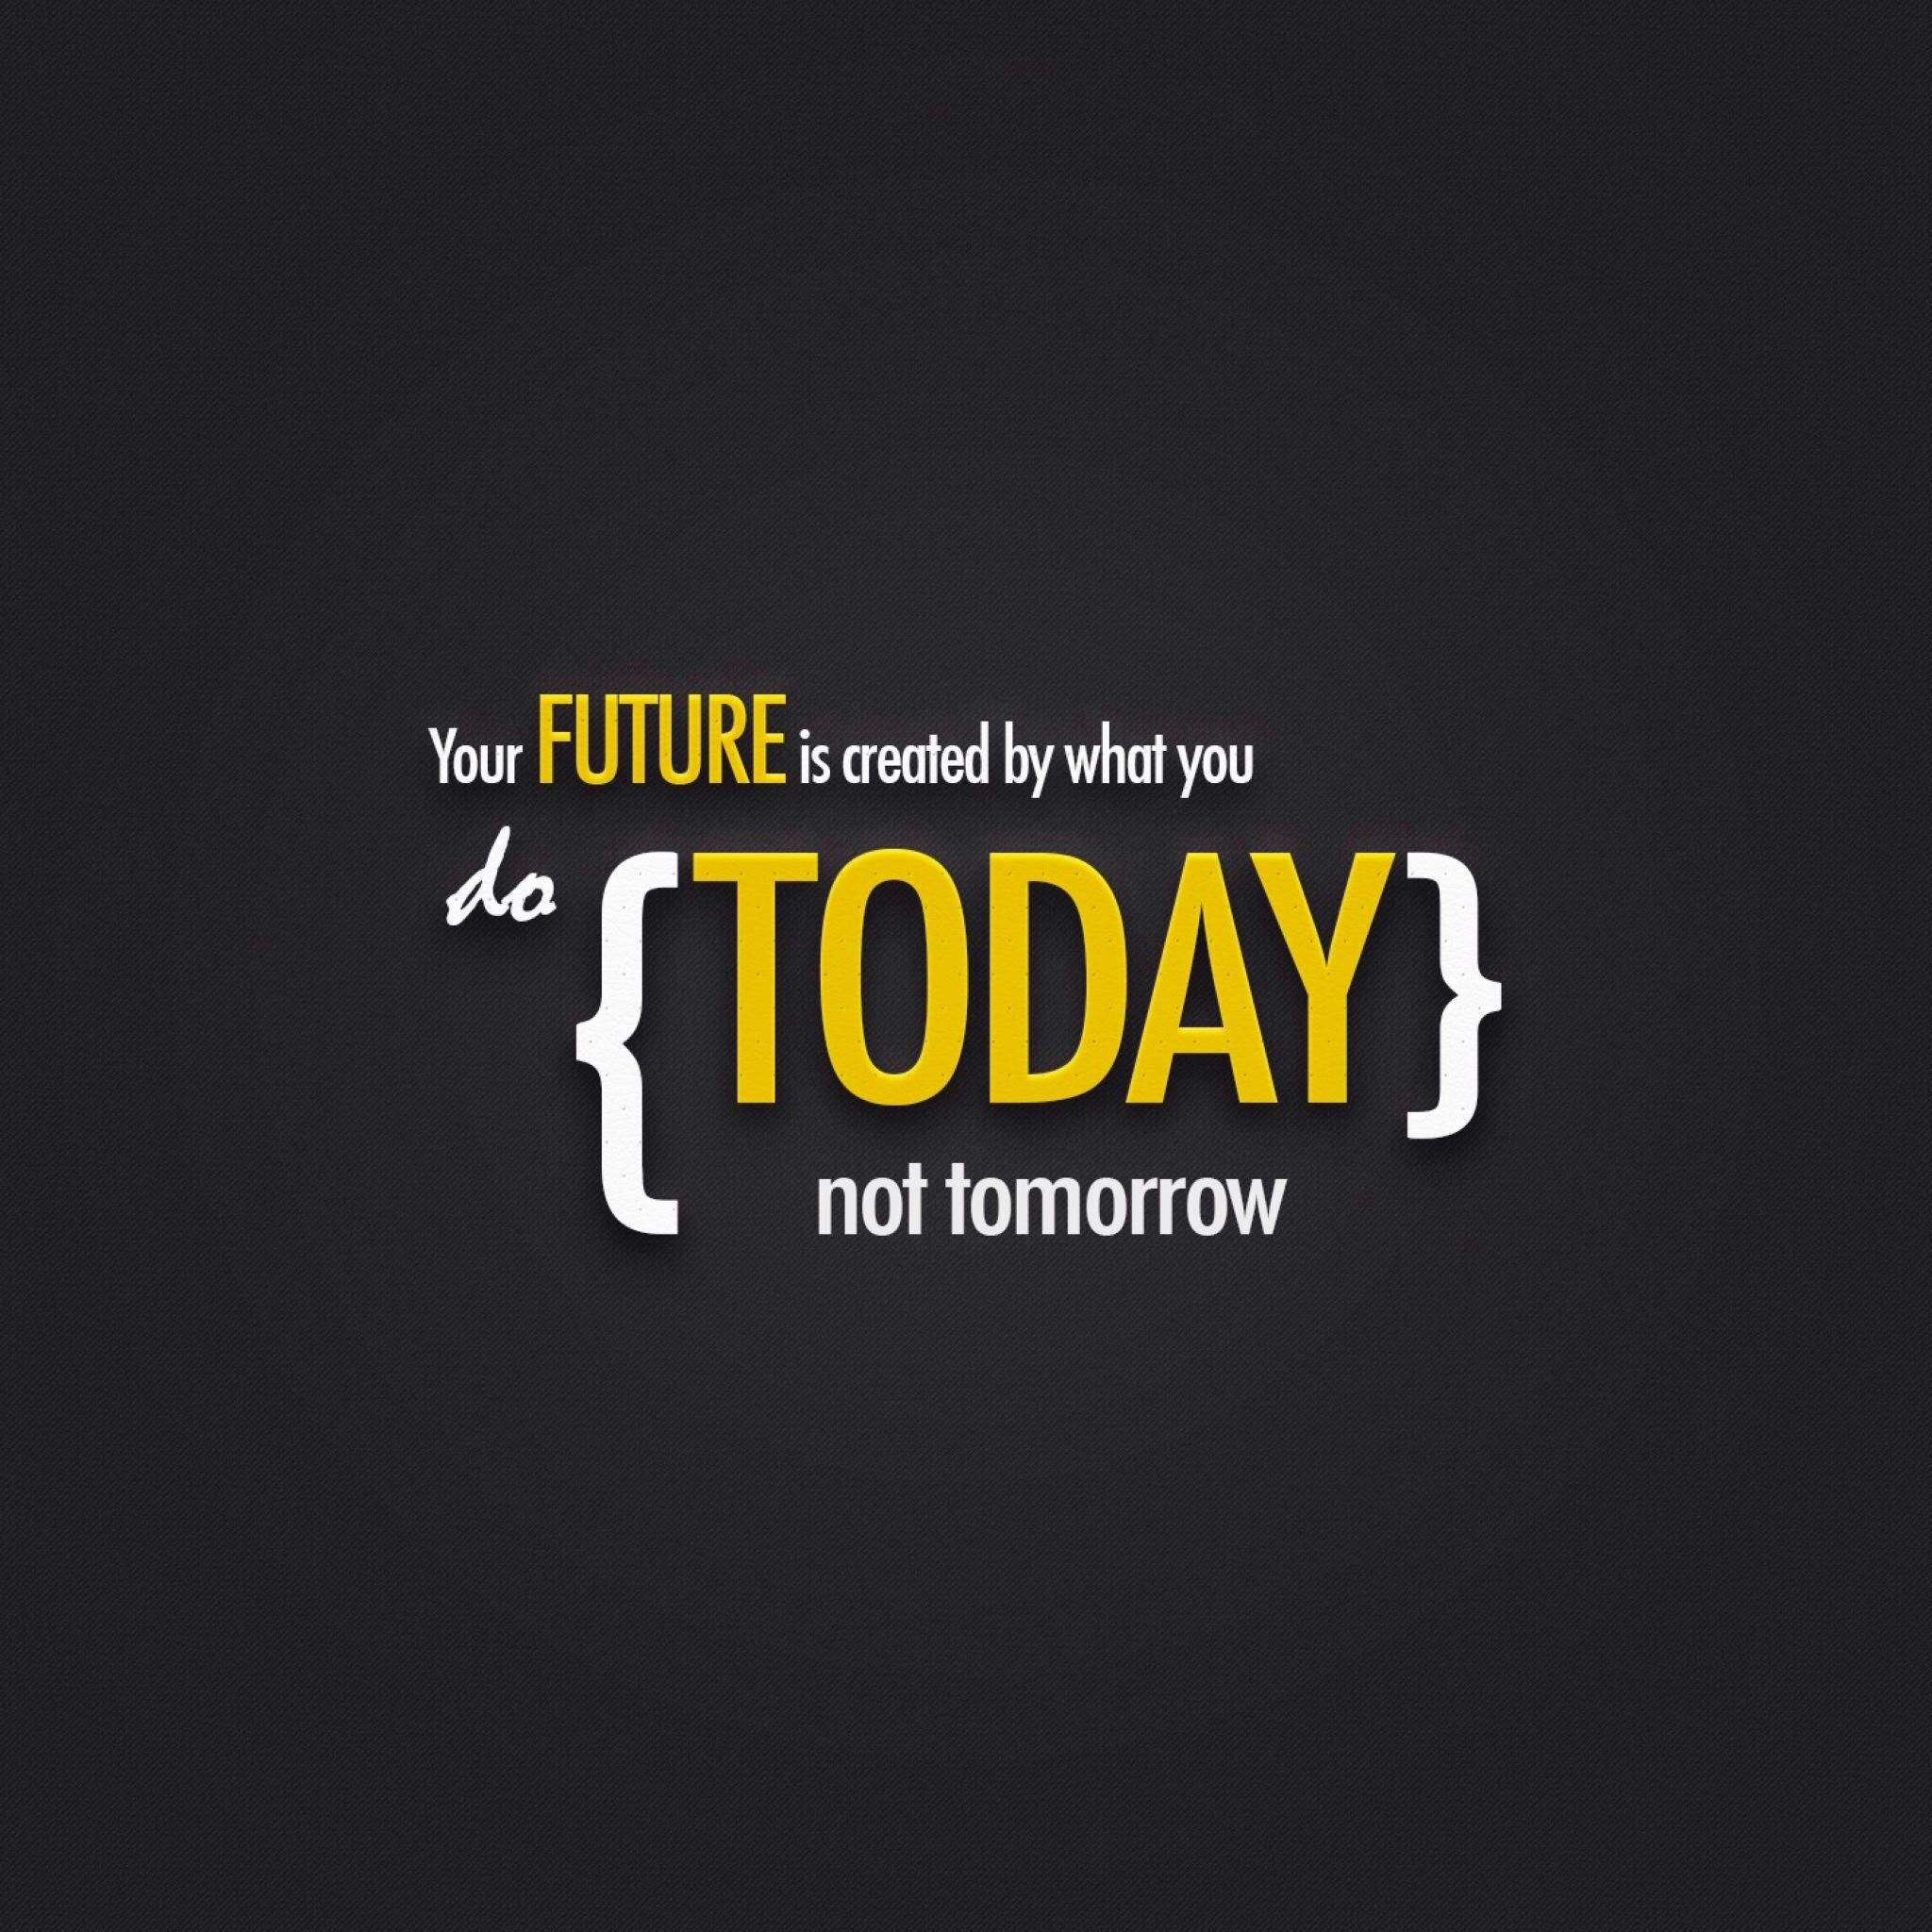 Motivational Quotes Wallpaper Download: Your Future Is Created By What You Do Today, Not Tomorrow